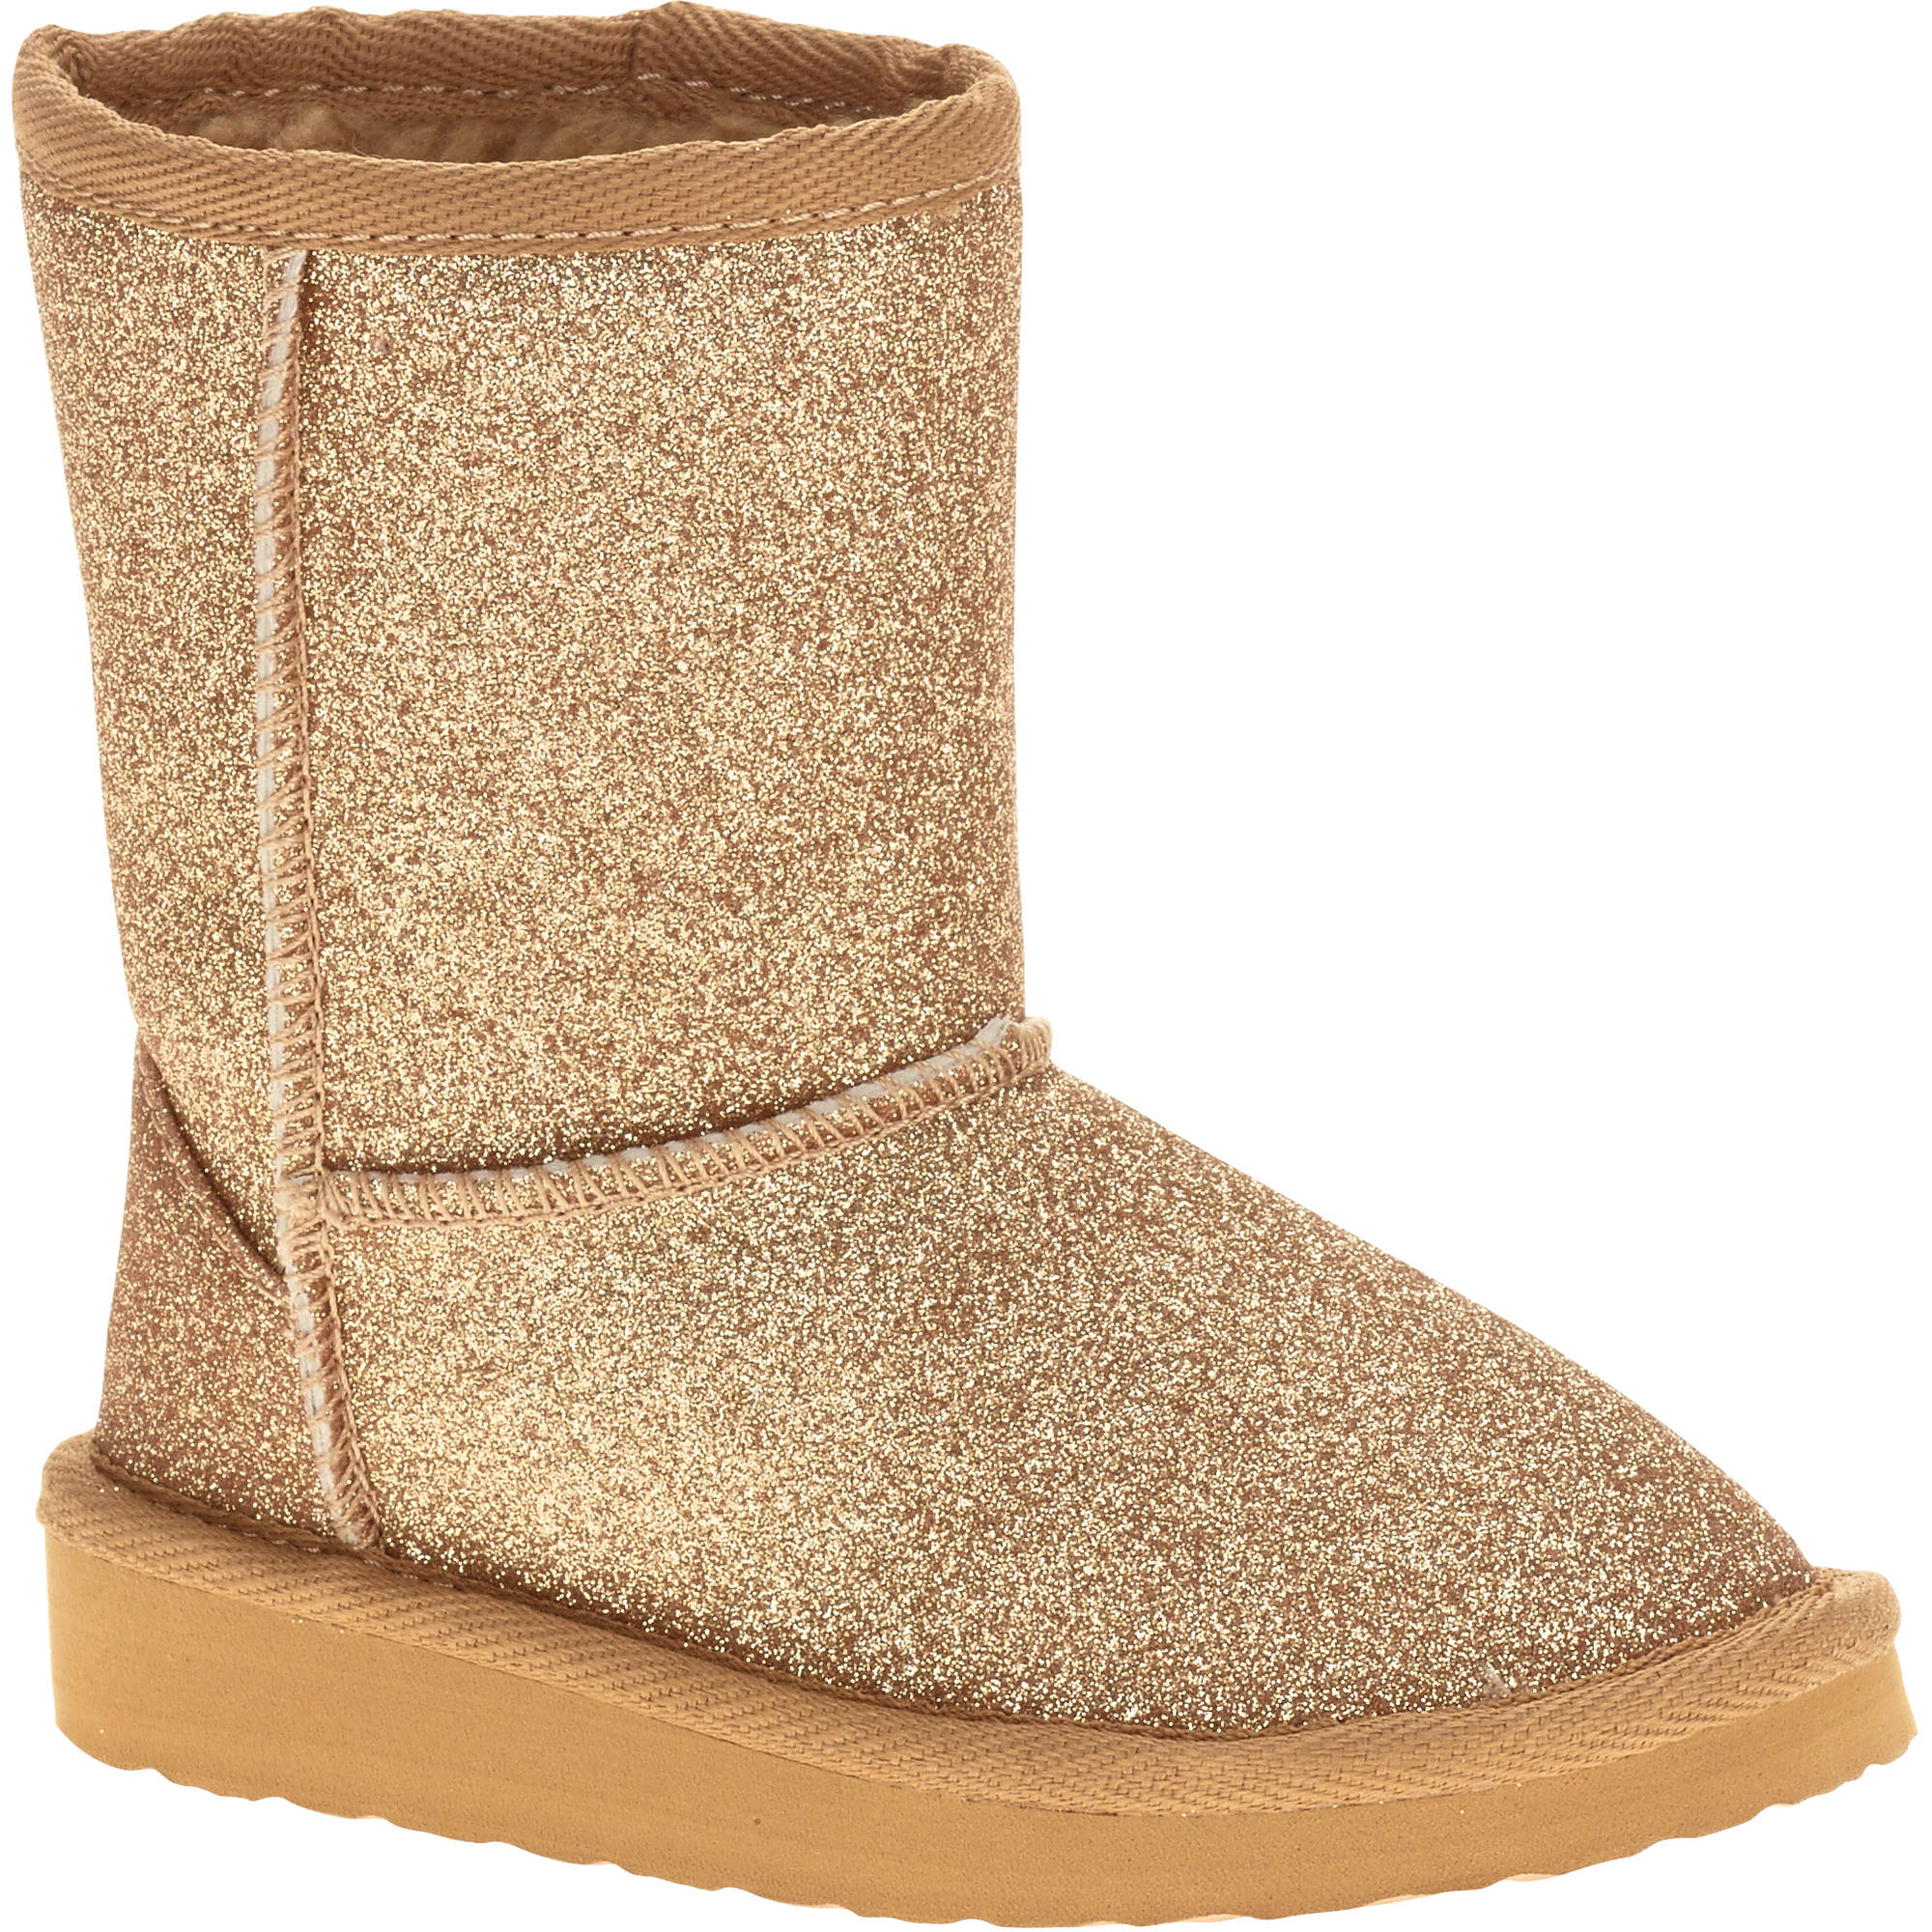 Garanimals Toddler Girls' Sparkle Lug Boot -Exclusive Color